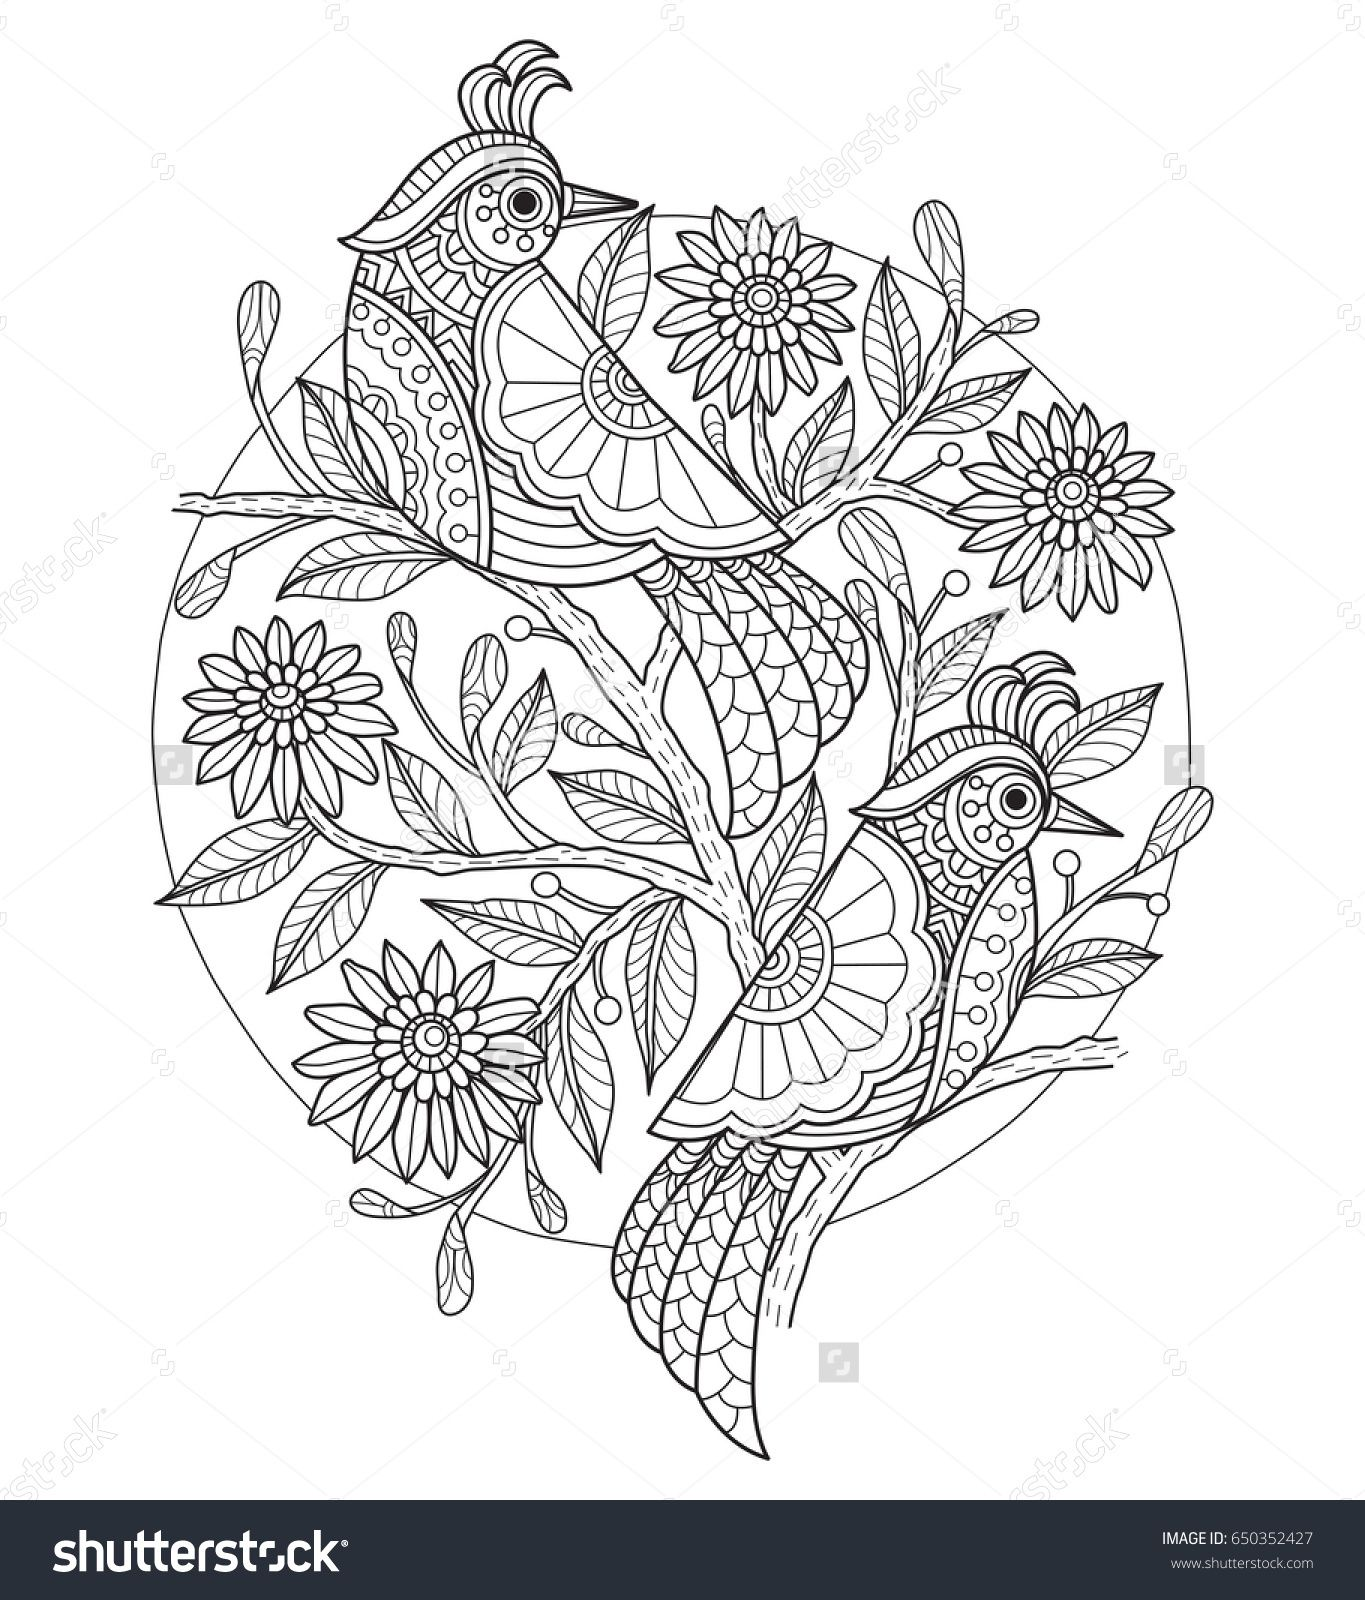 Birds and flower. Zentangle stylized cartoon isolated on white background. Hand drawn sketch illustration for adult coloring book, T-shirt emblem, logo or tattoo, zentangle design elements.